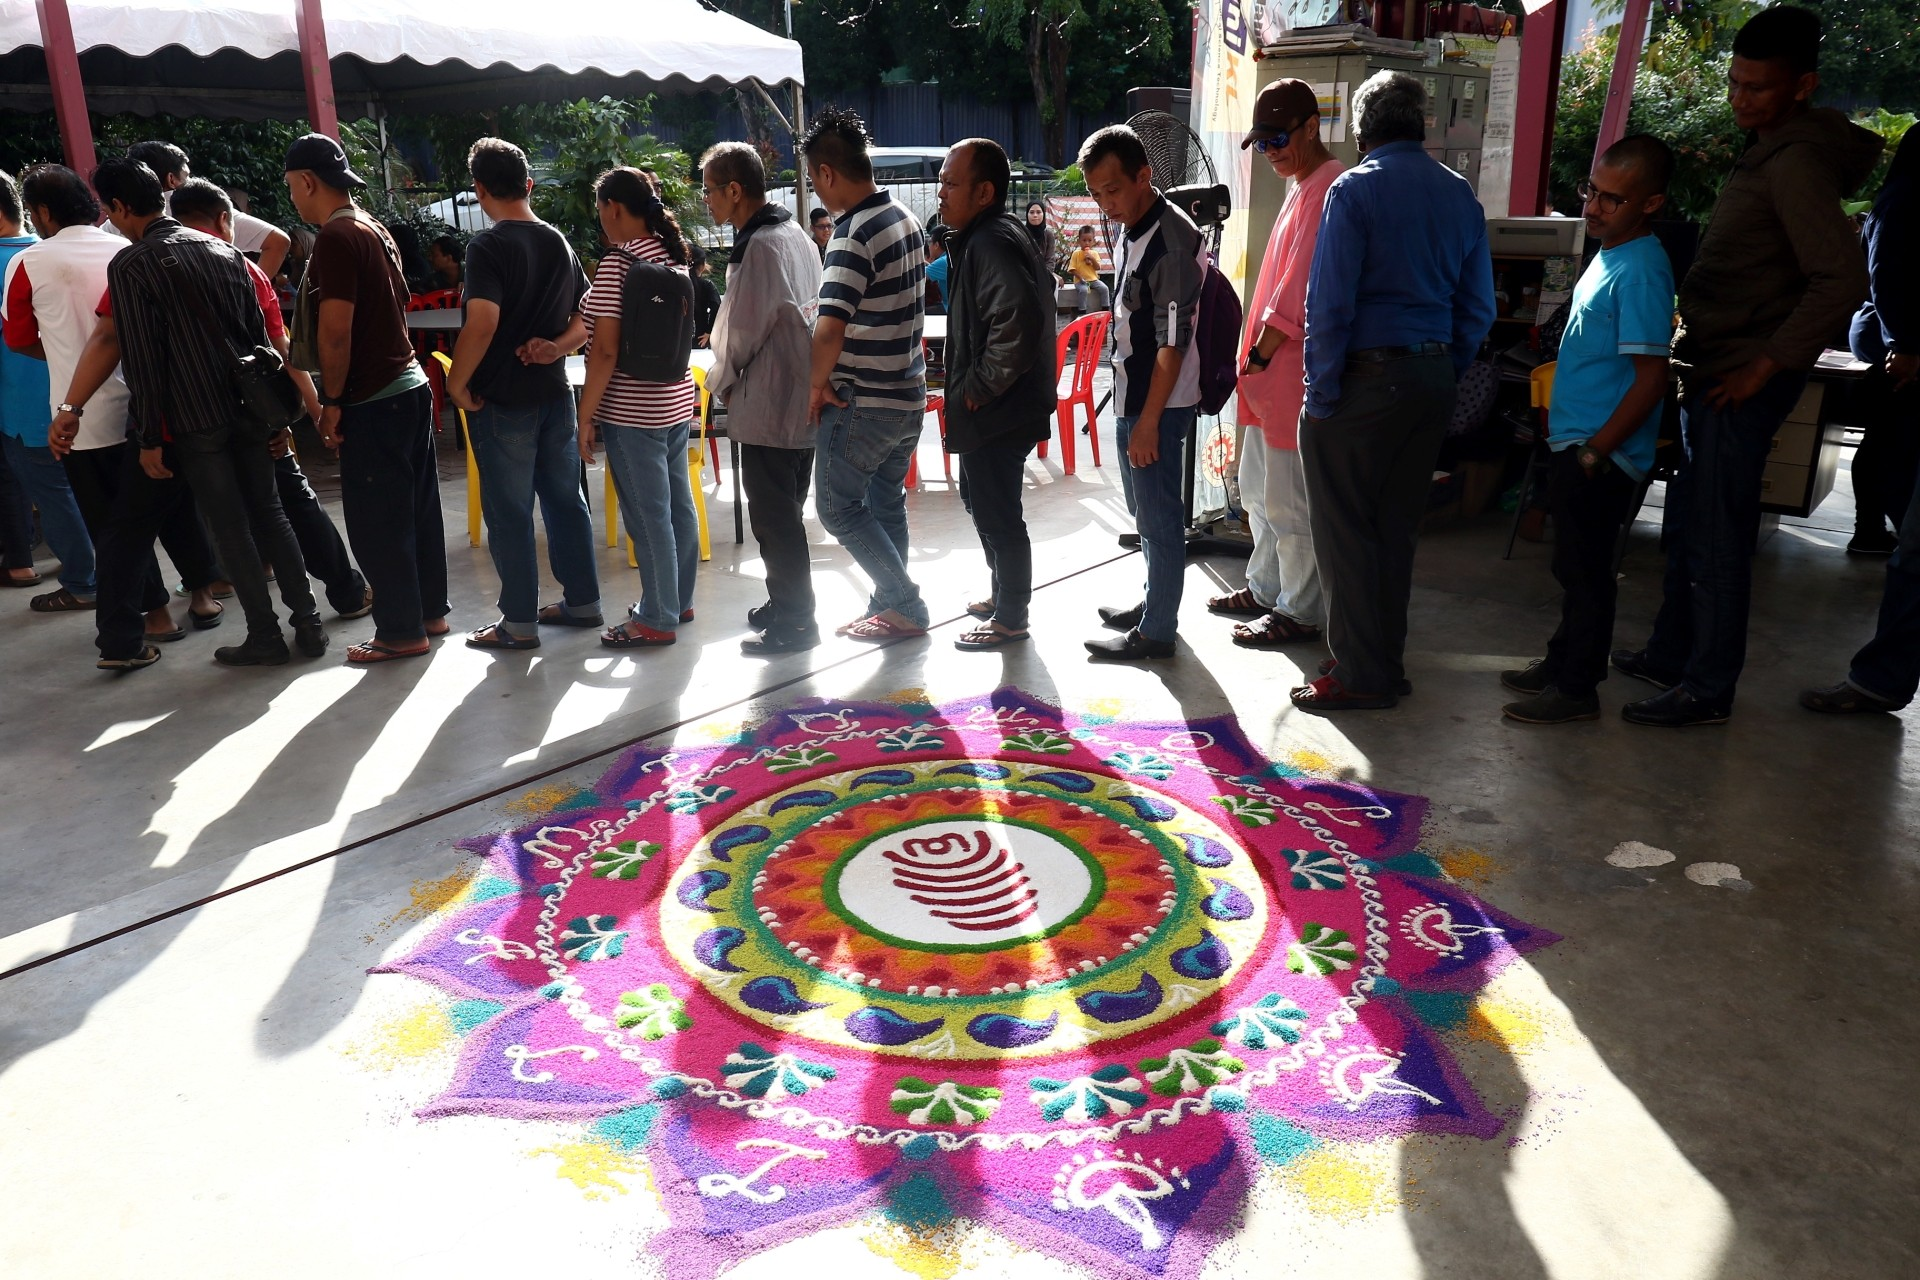 'Jom diwali' was held at one of the city's homeless halfway houses.